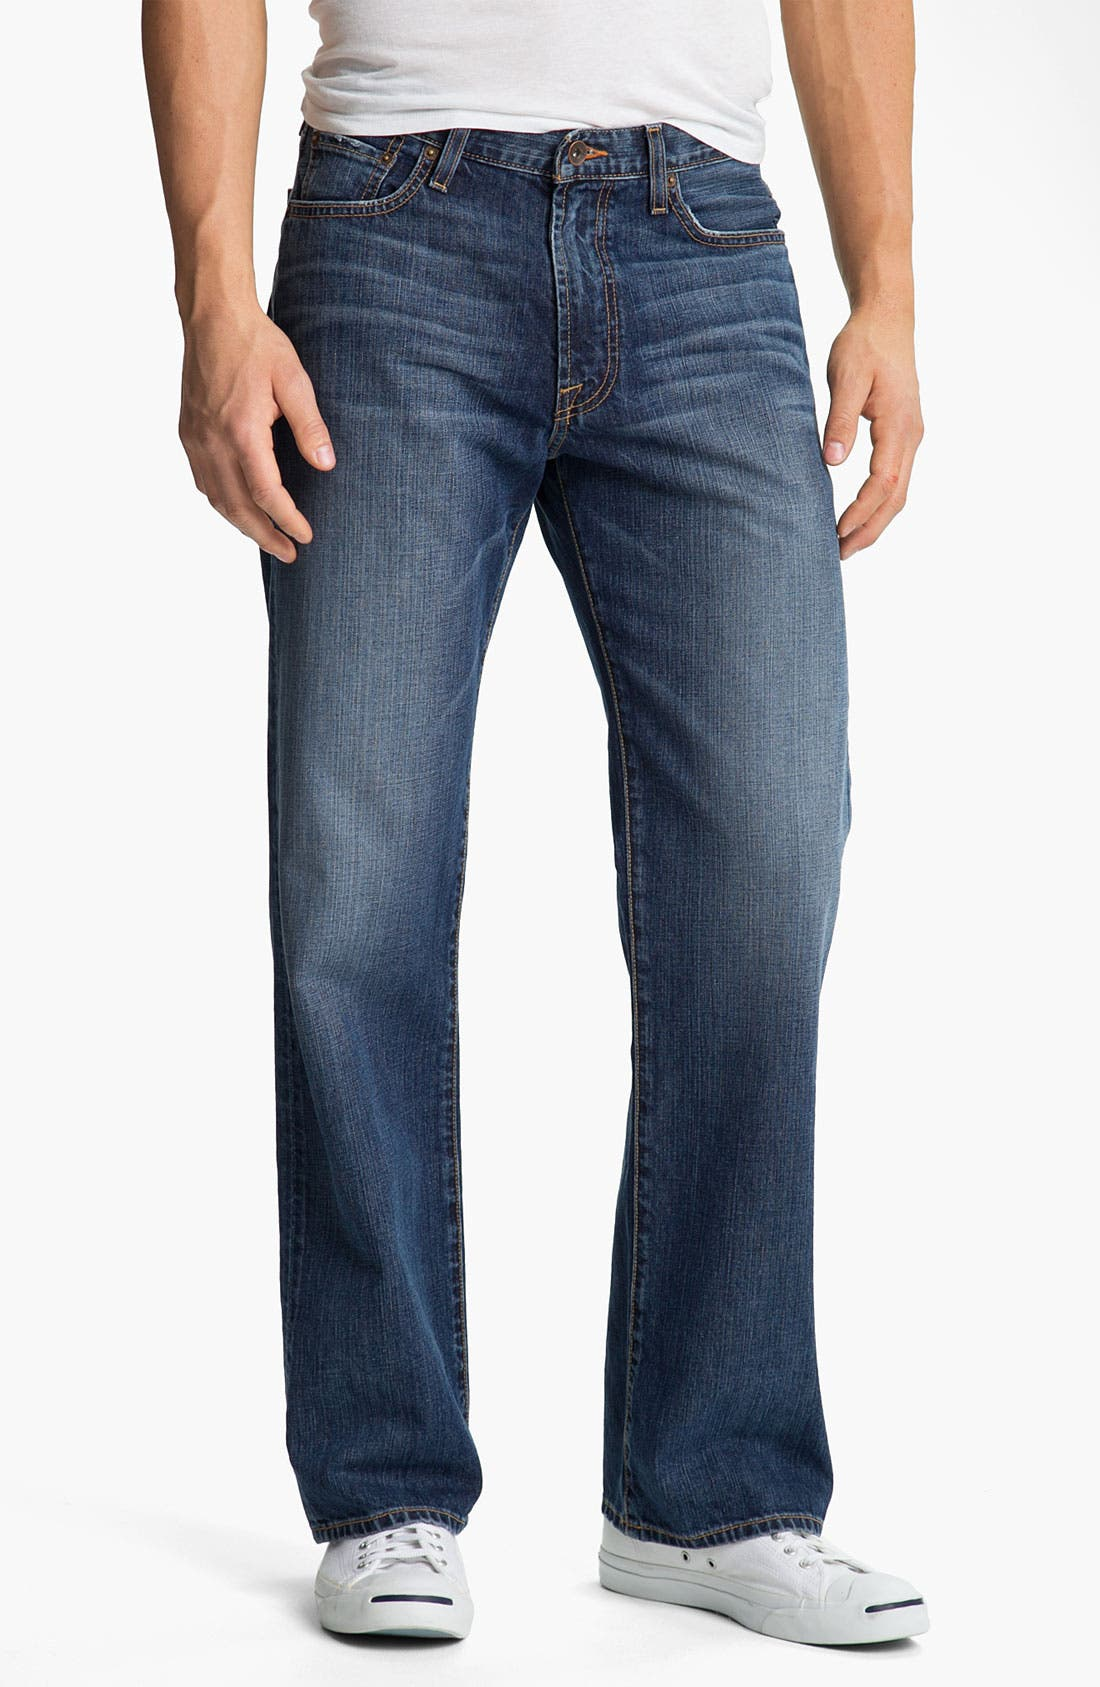 Alternate Image 1 Selected - Lucky Brand '181' Relaxed Straight Leg Jeans (Medium Clarksville)